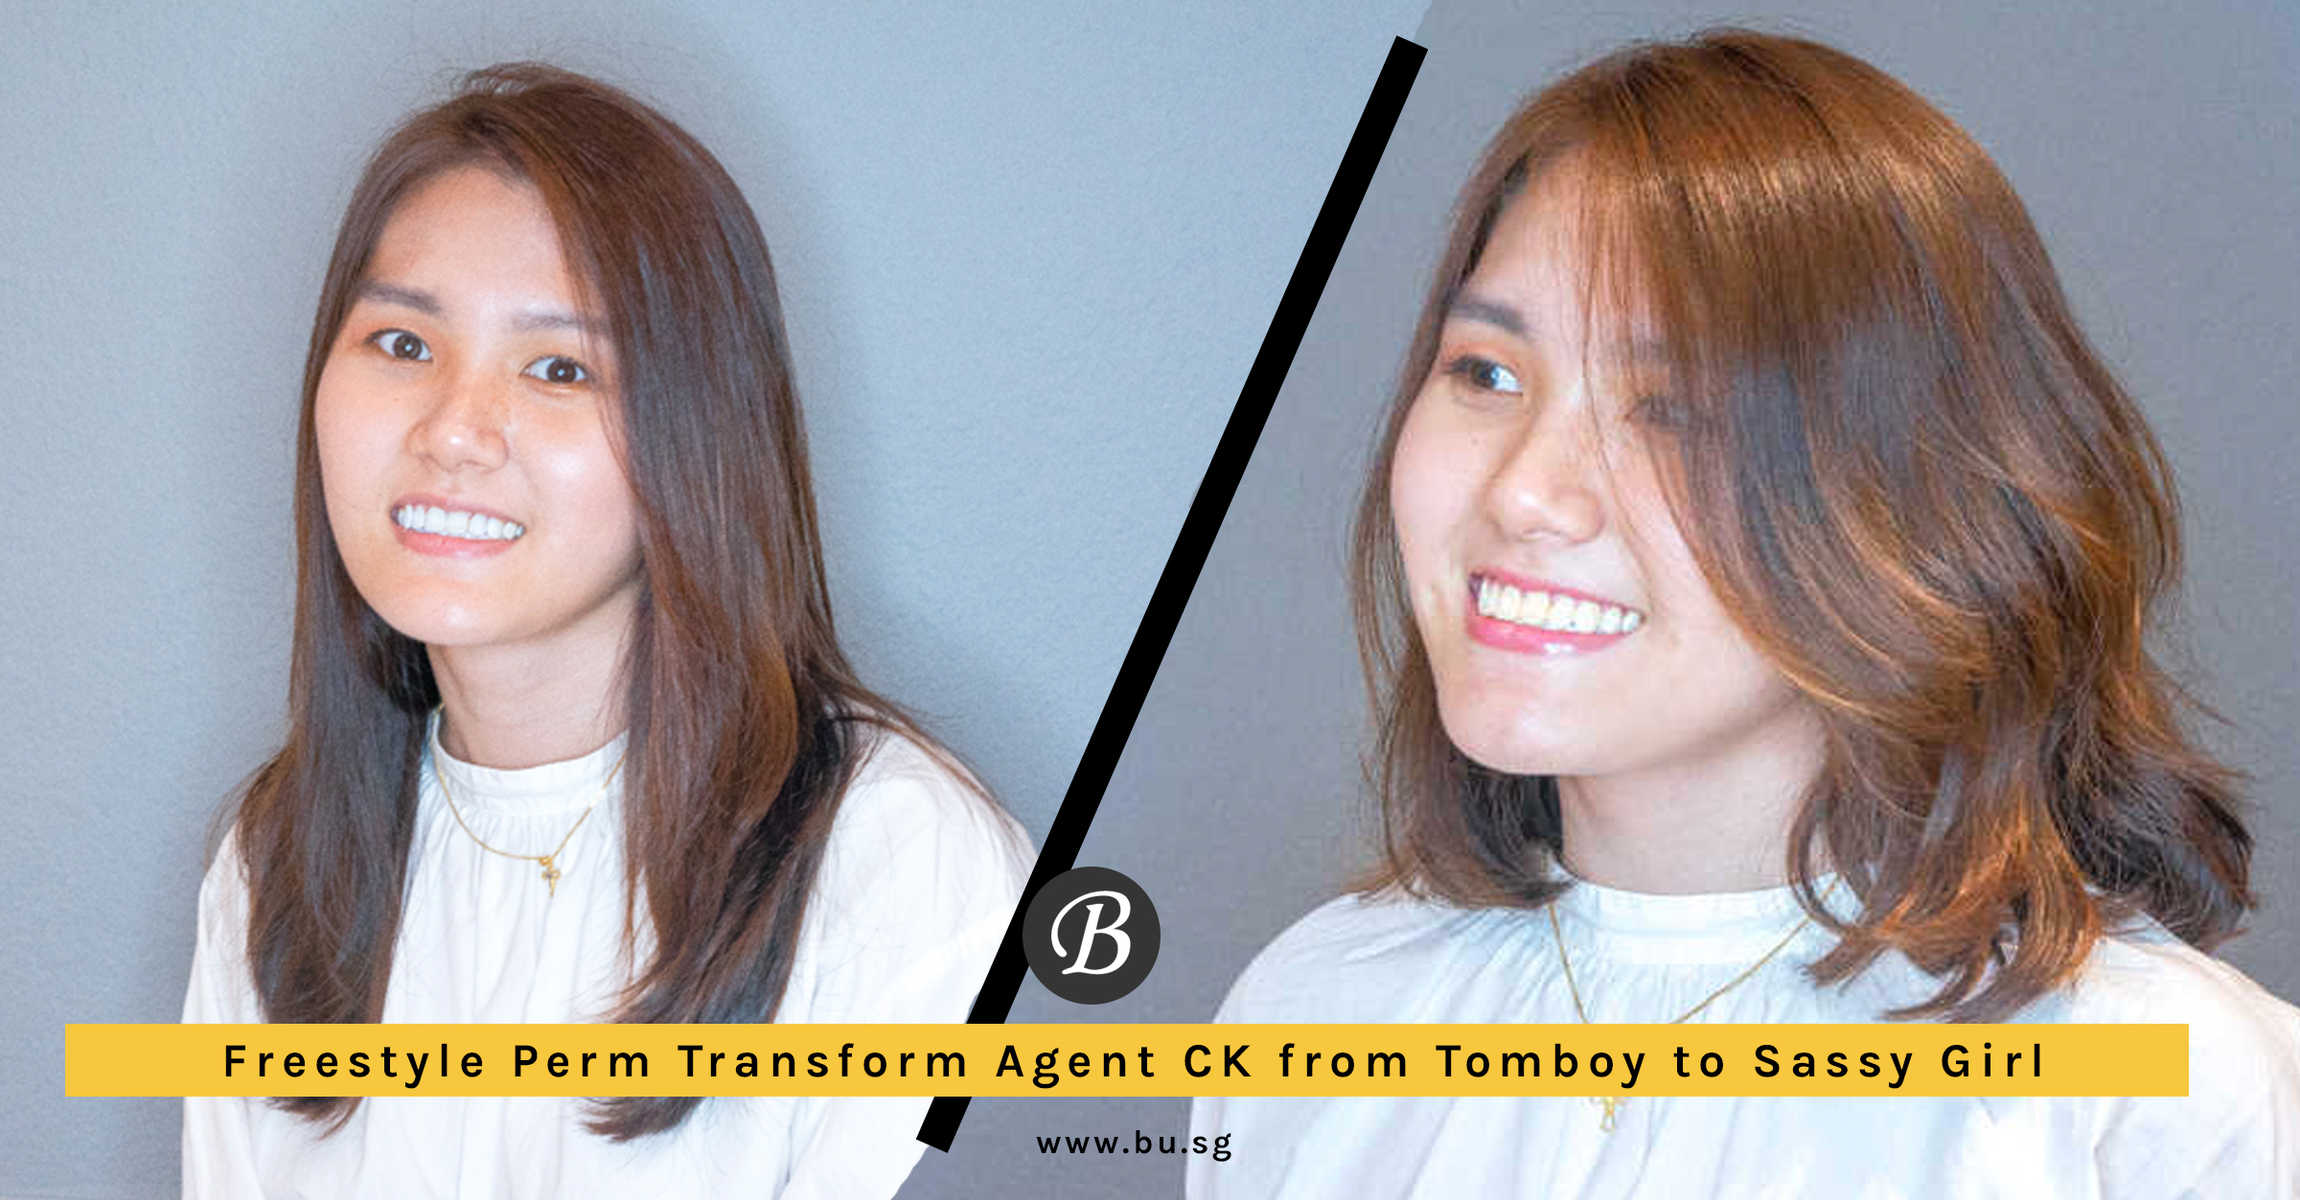 The Freestyle Perm Transformed Agent CK from Tomboy to Fun and Sassy Girl